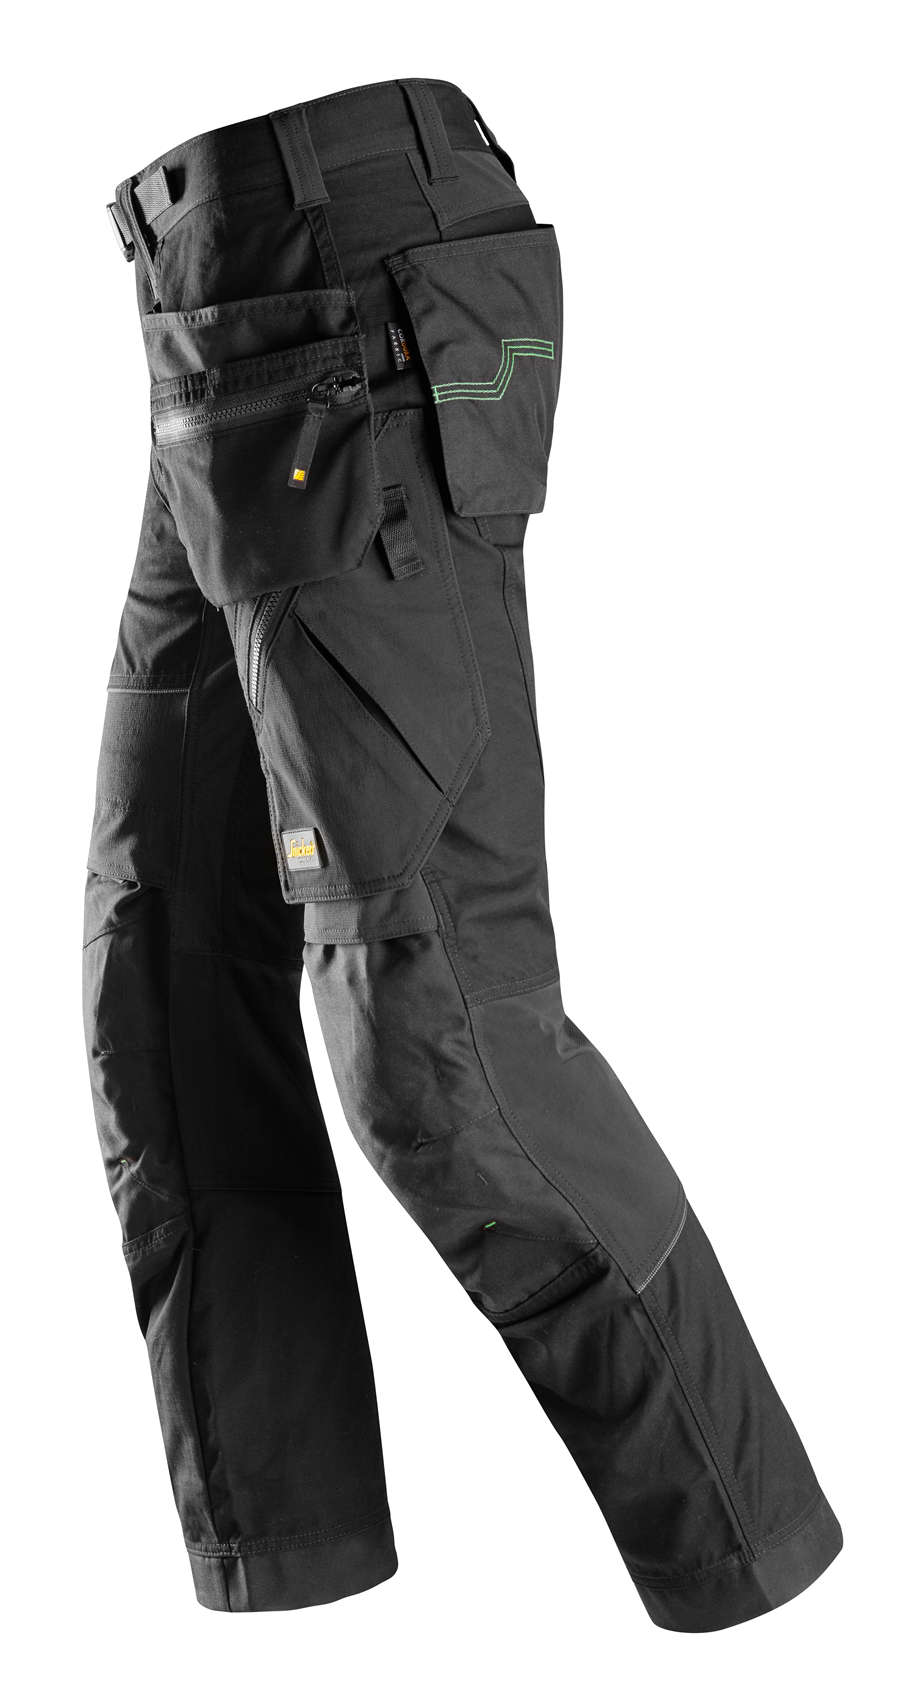 6902 Snickers Black FlexiWork Holster Pockets Work Trousers